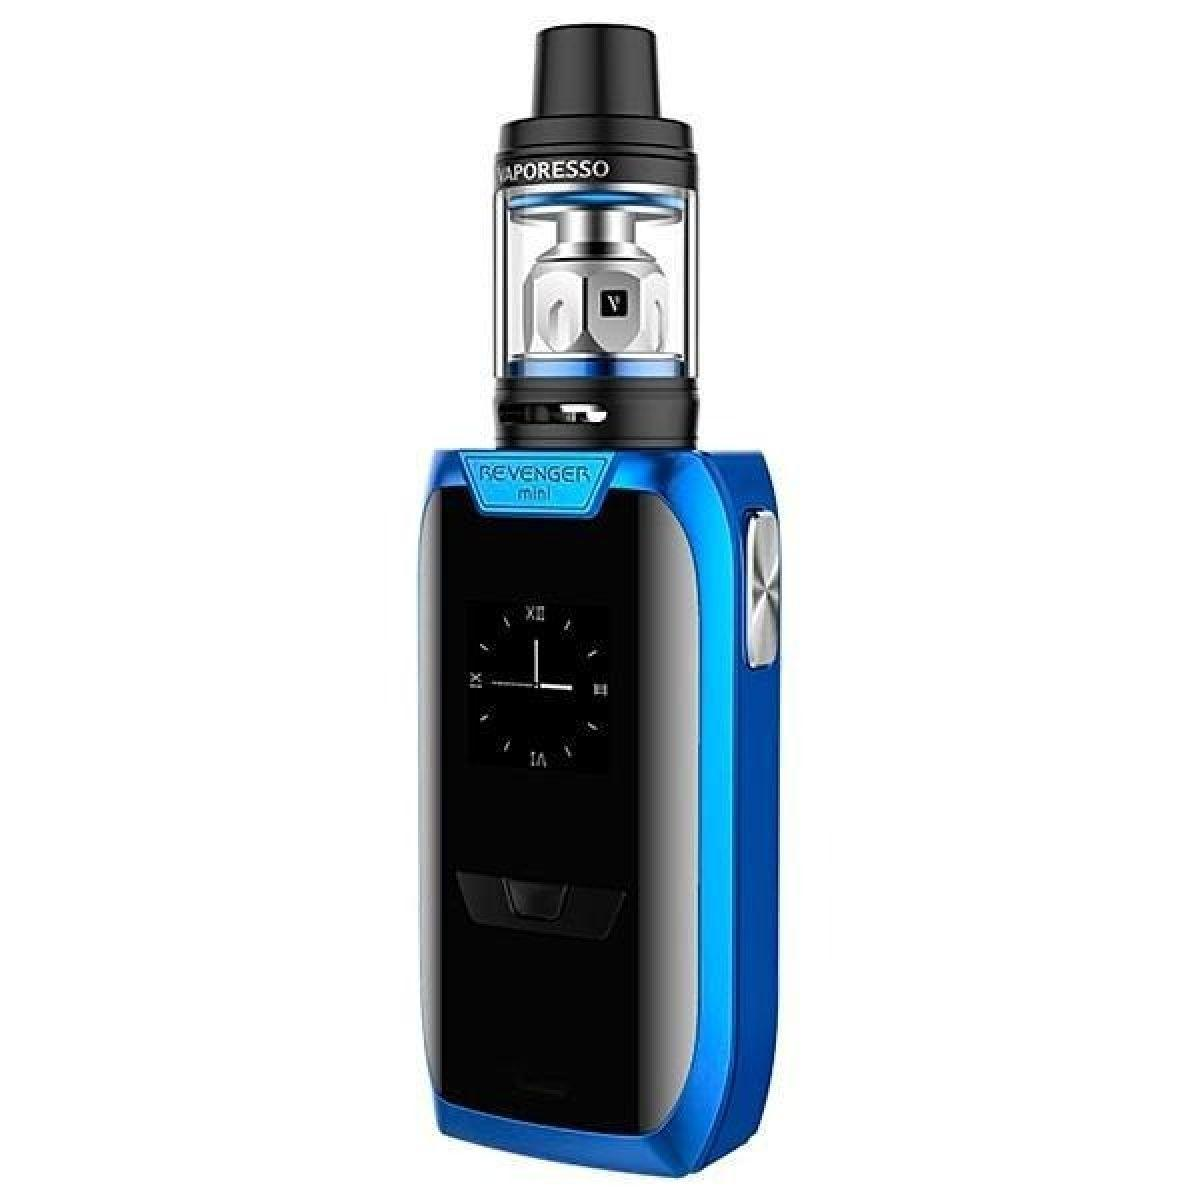 VAPE VAPORESSO REVENGER MINI KIT